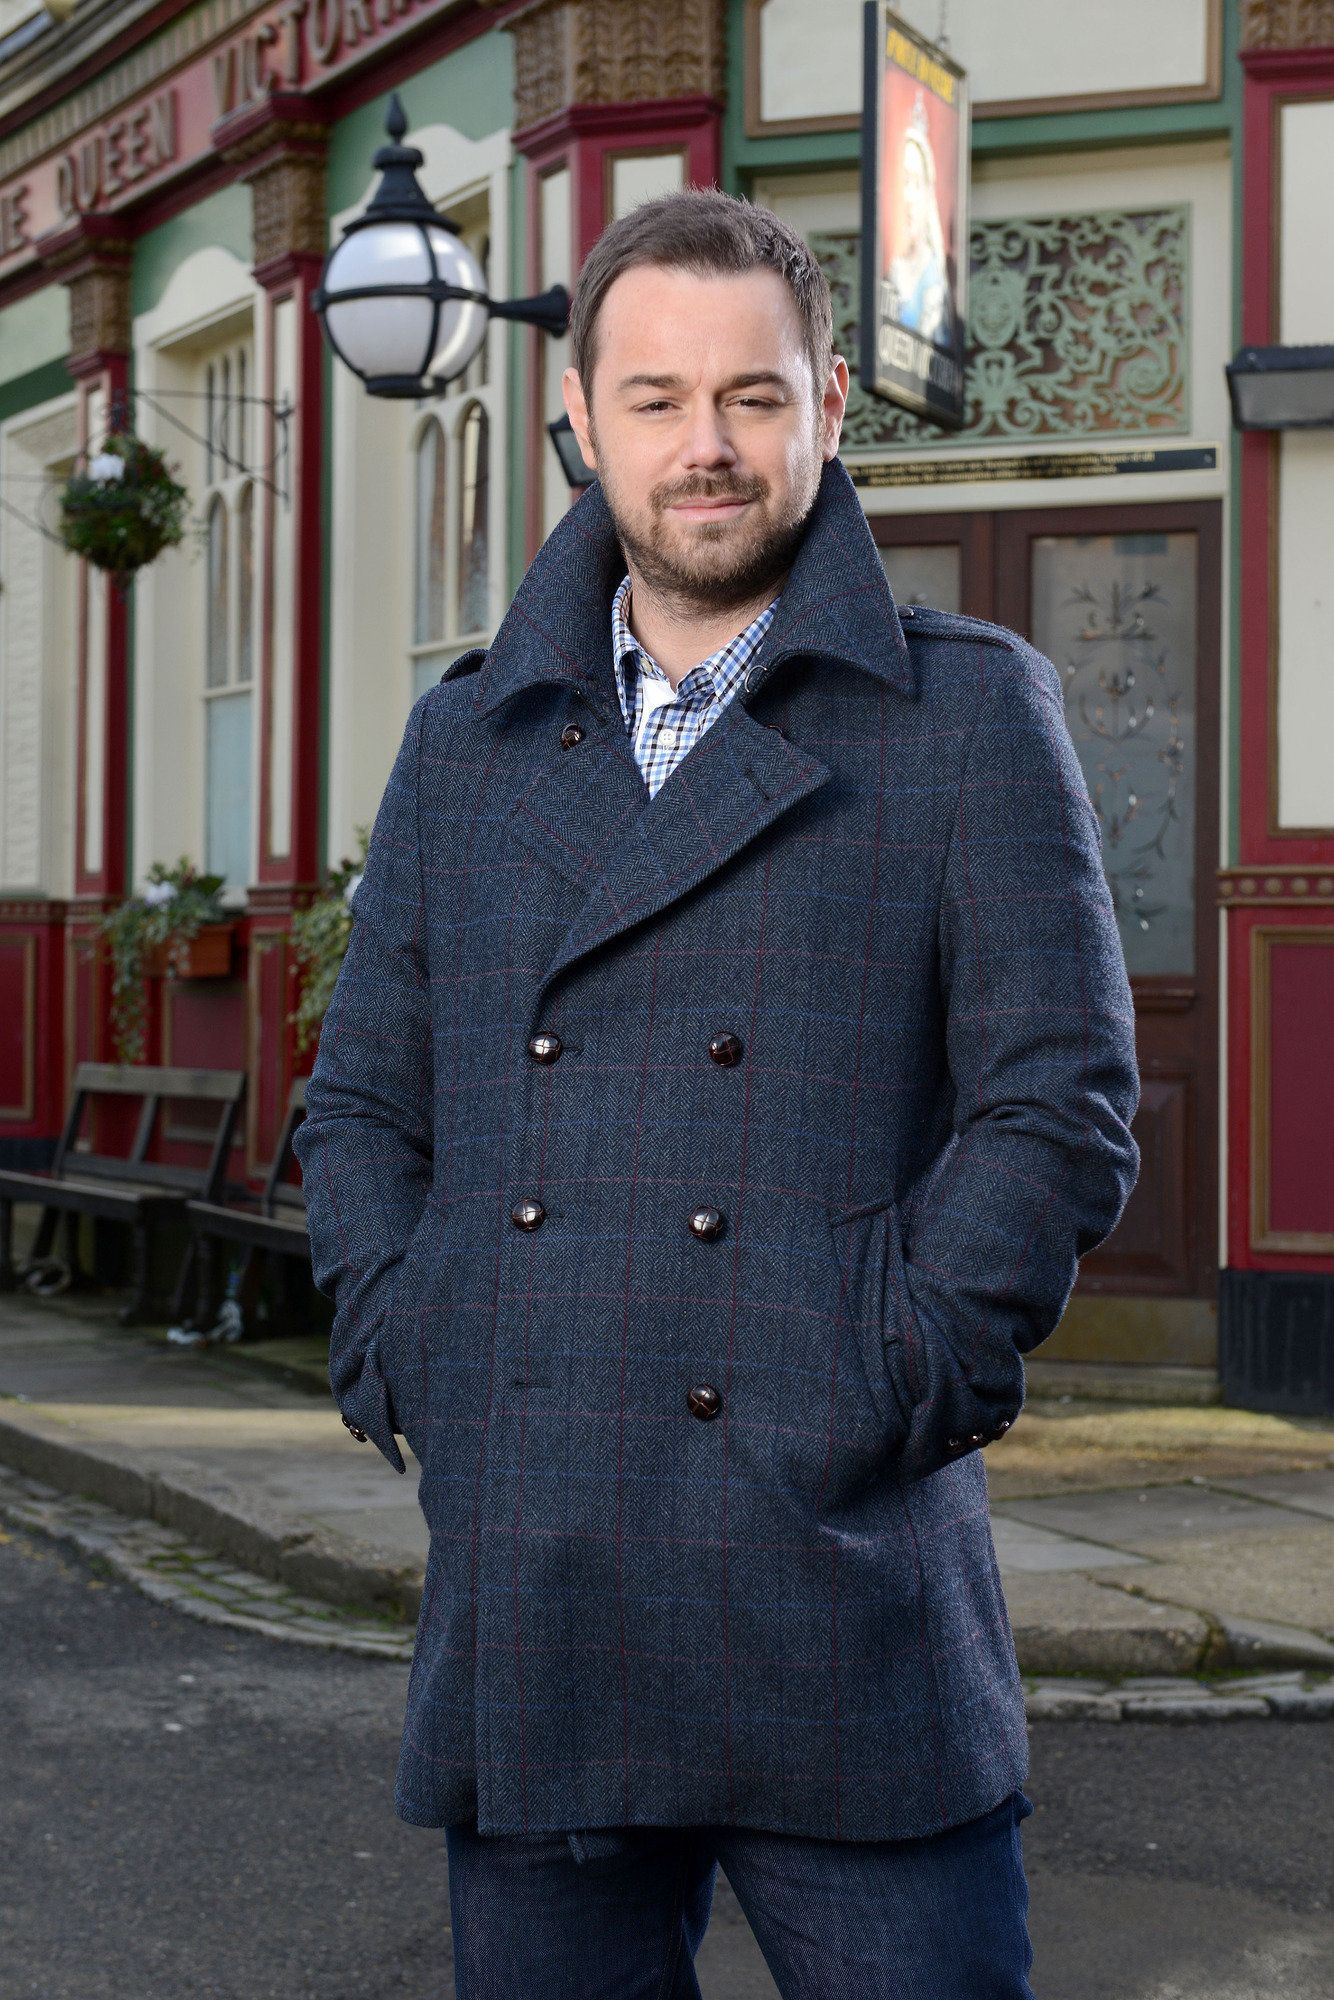 Danny Dyer Hints He Could Quit 'EastEnders' This